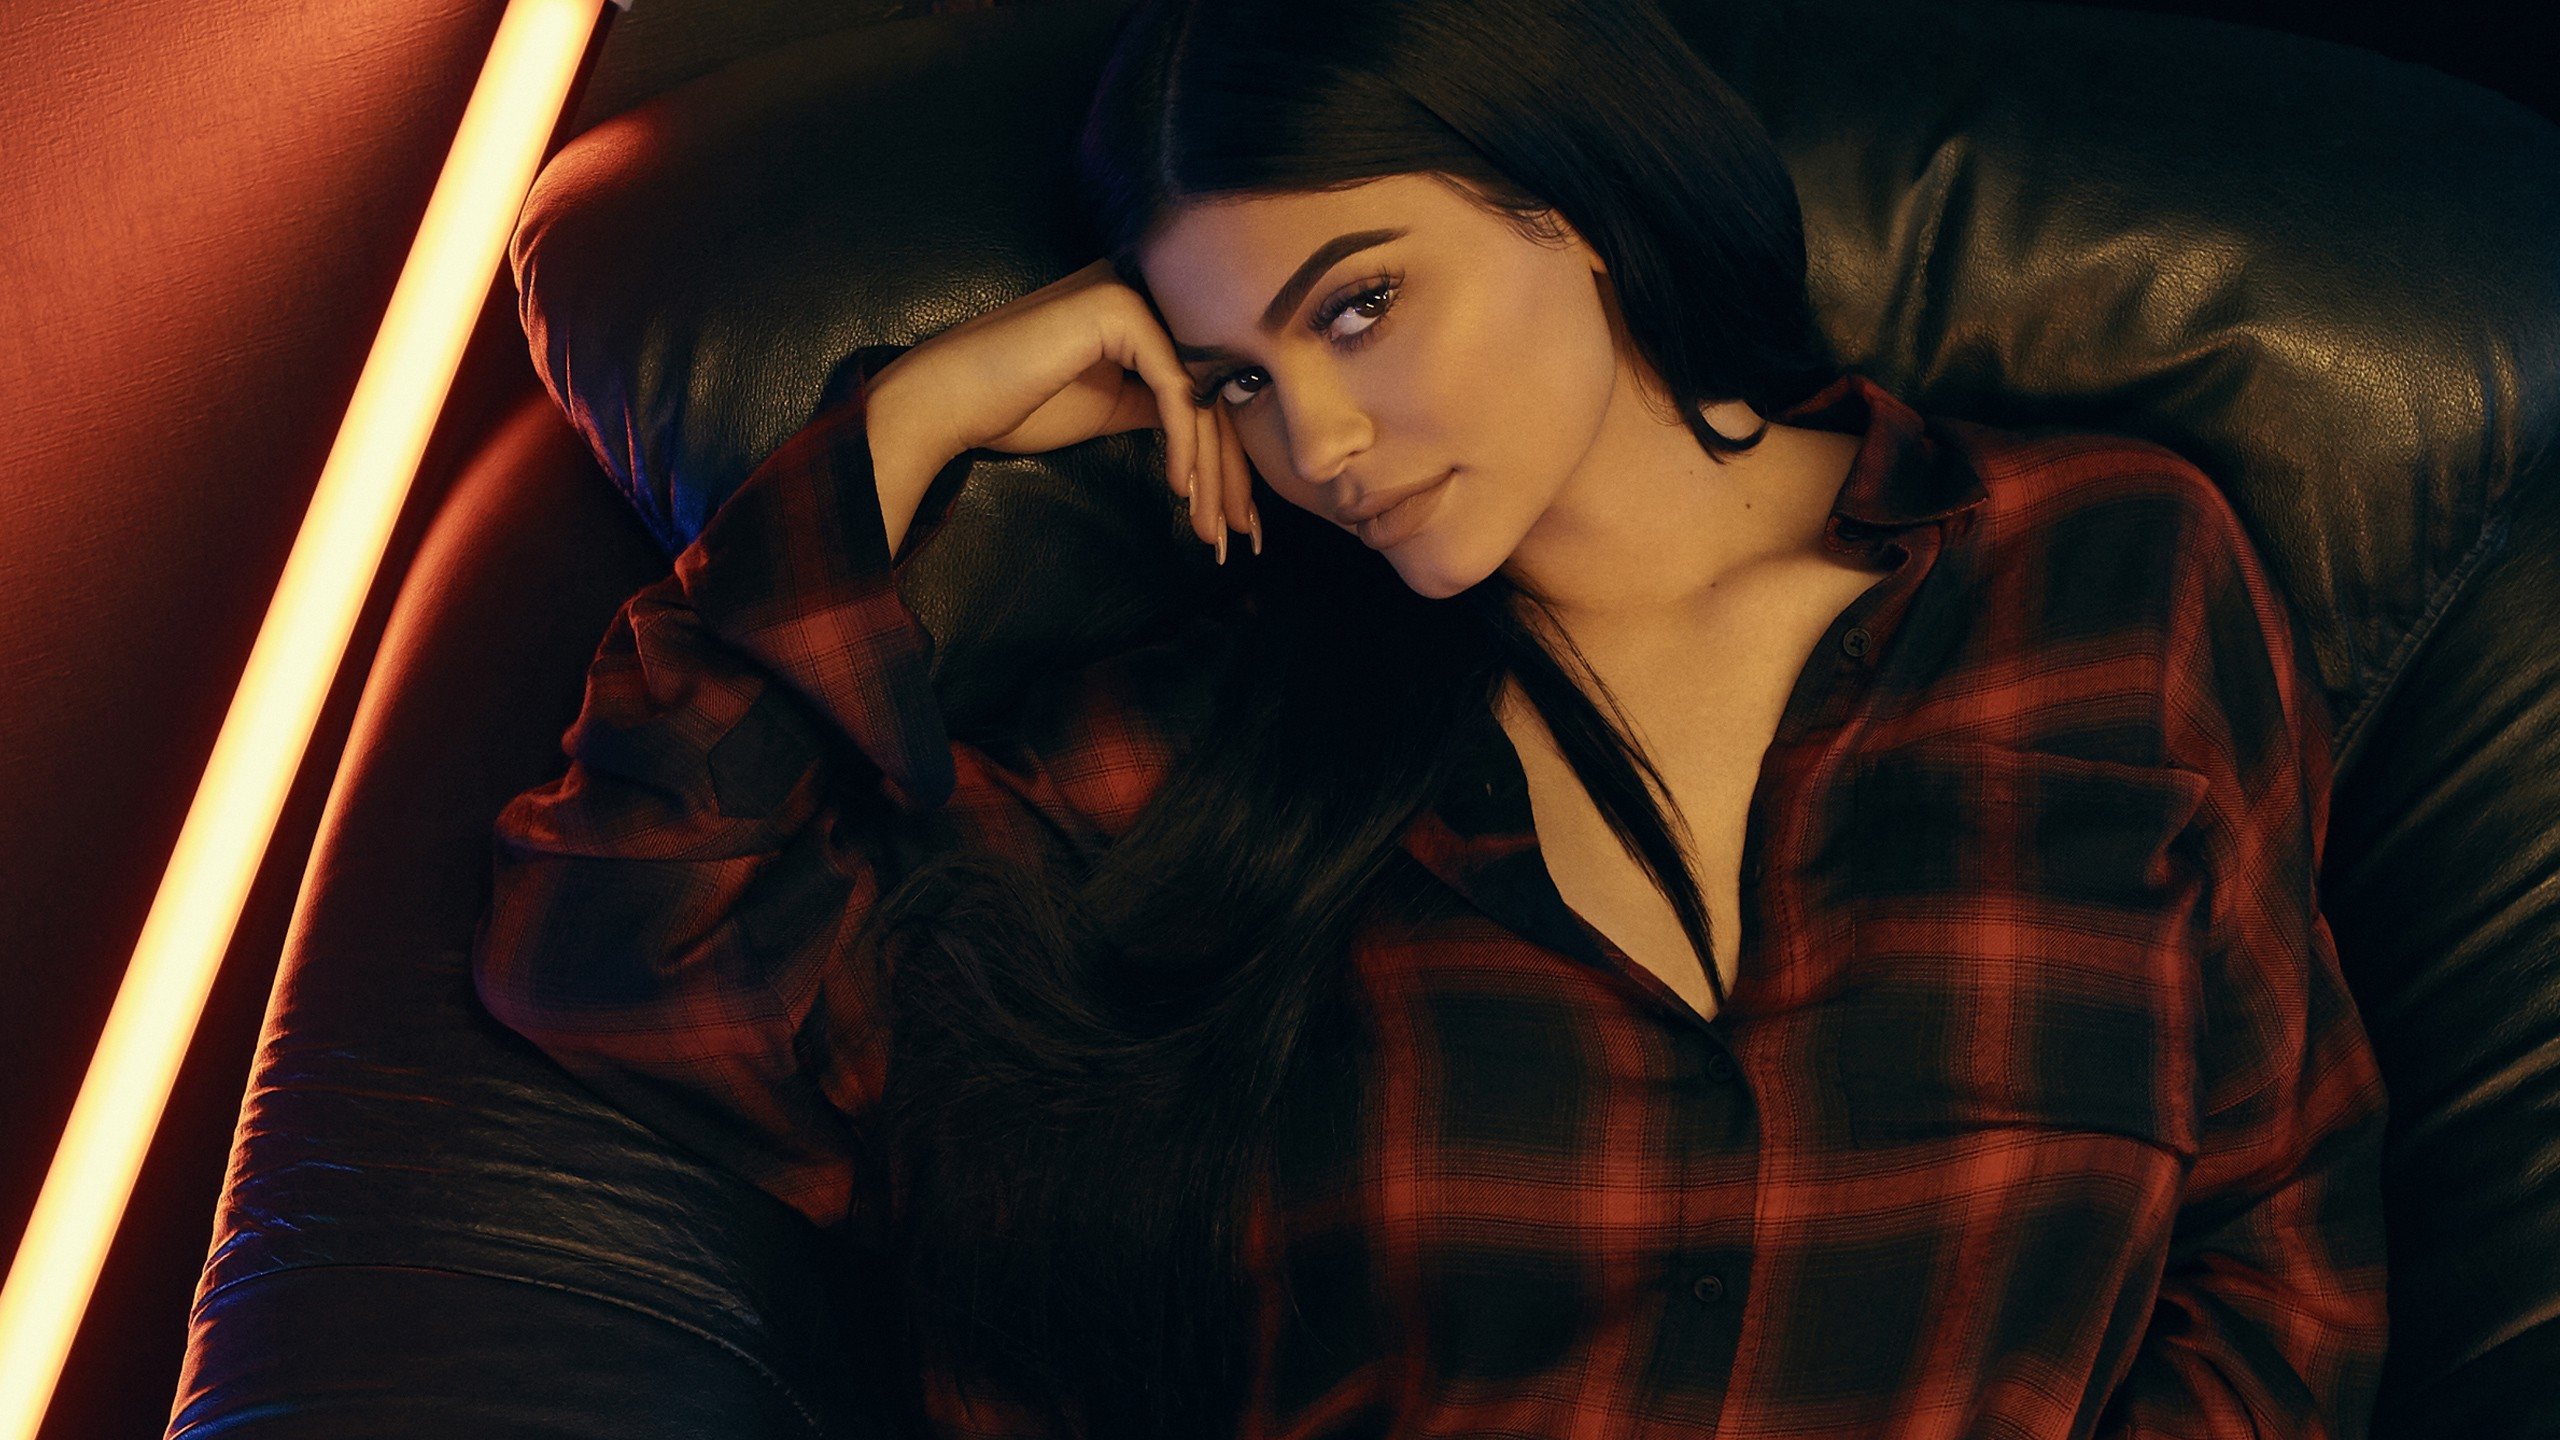 Wallpaper Kylie Jenner laying on a couch